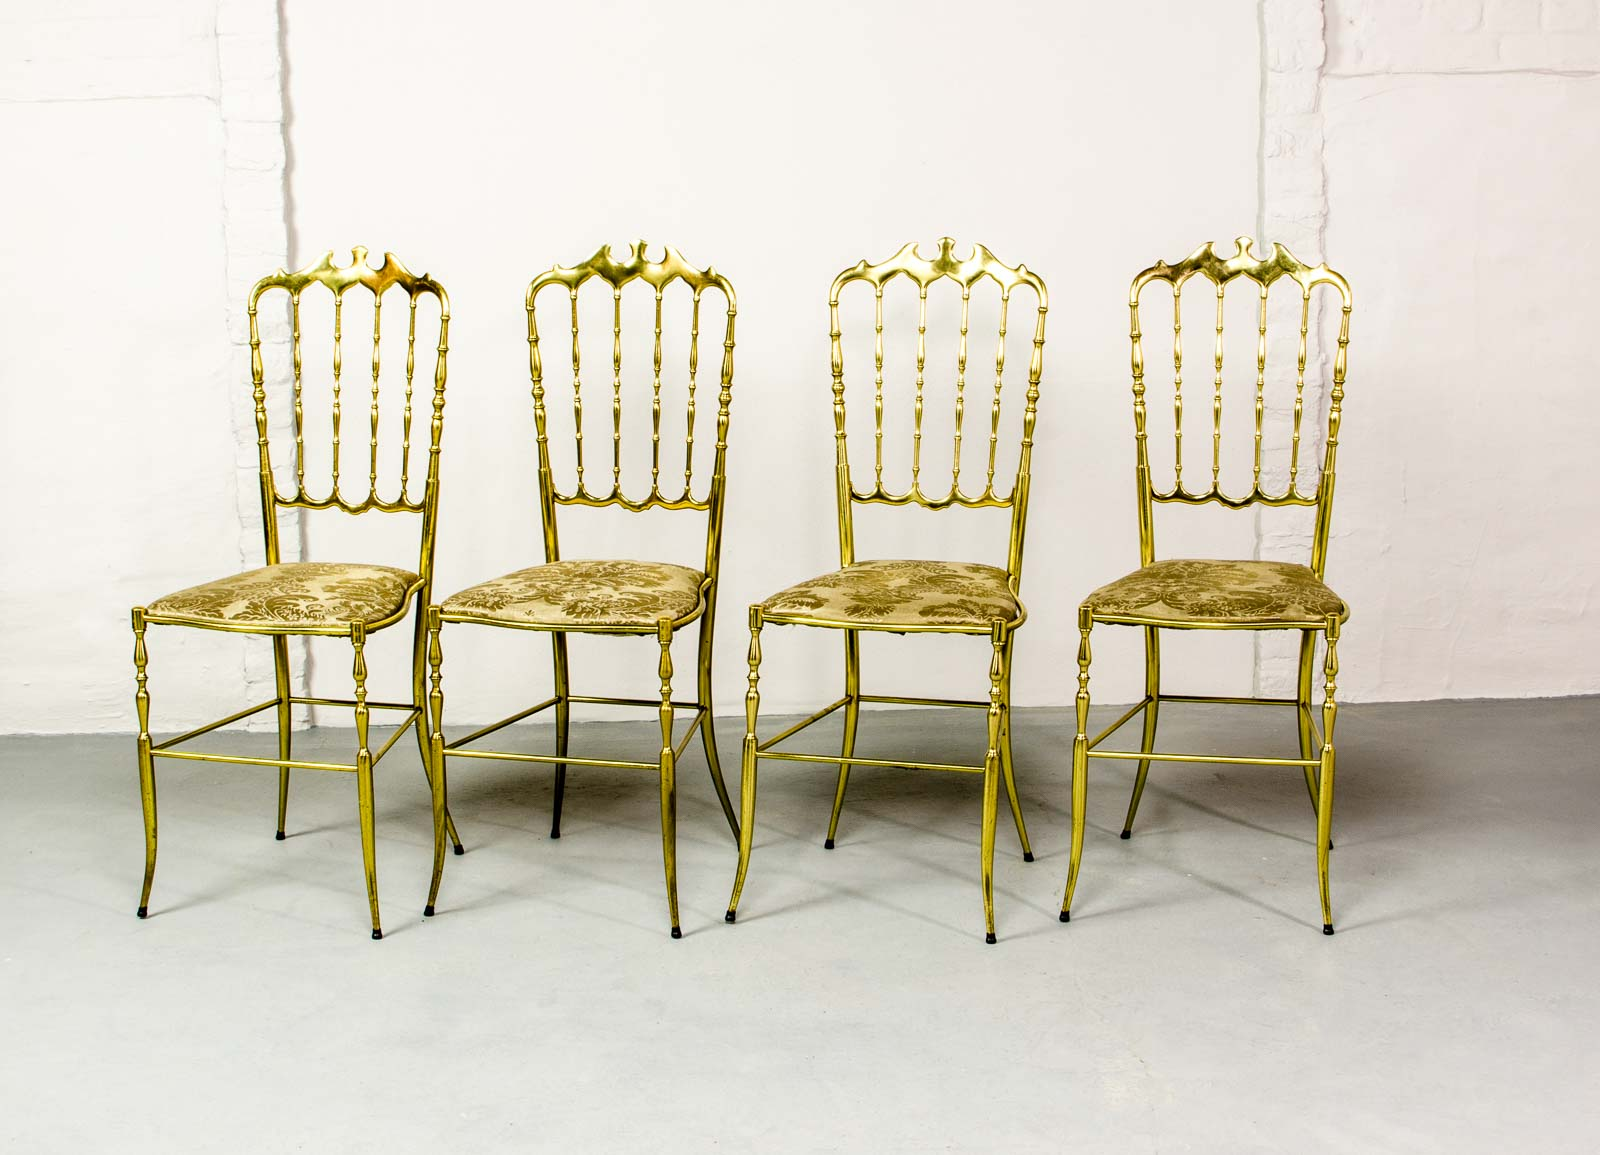 set of four midcentury italian brass chiavari spindle back chairs with padded seats upholstered